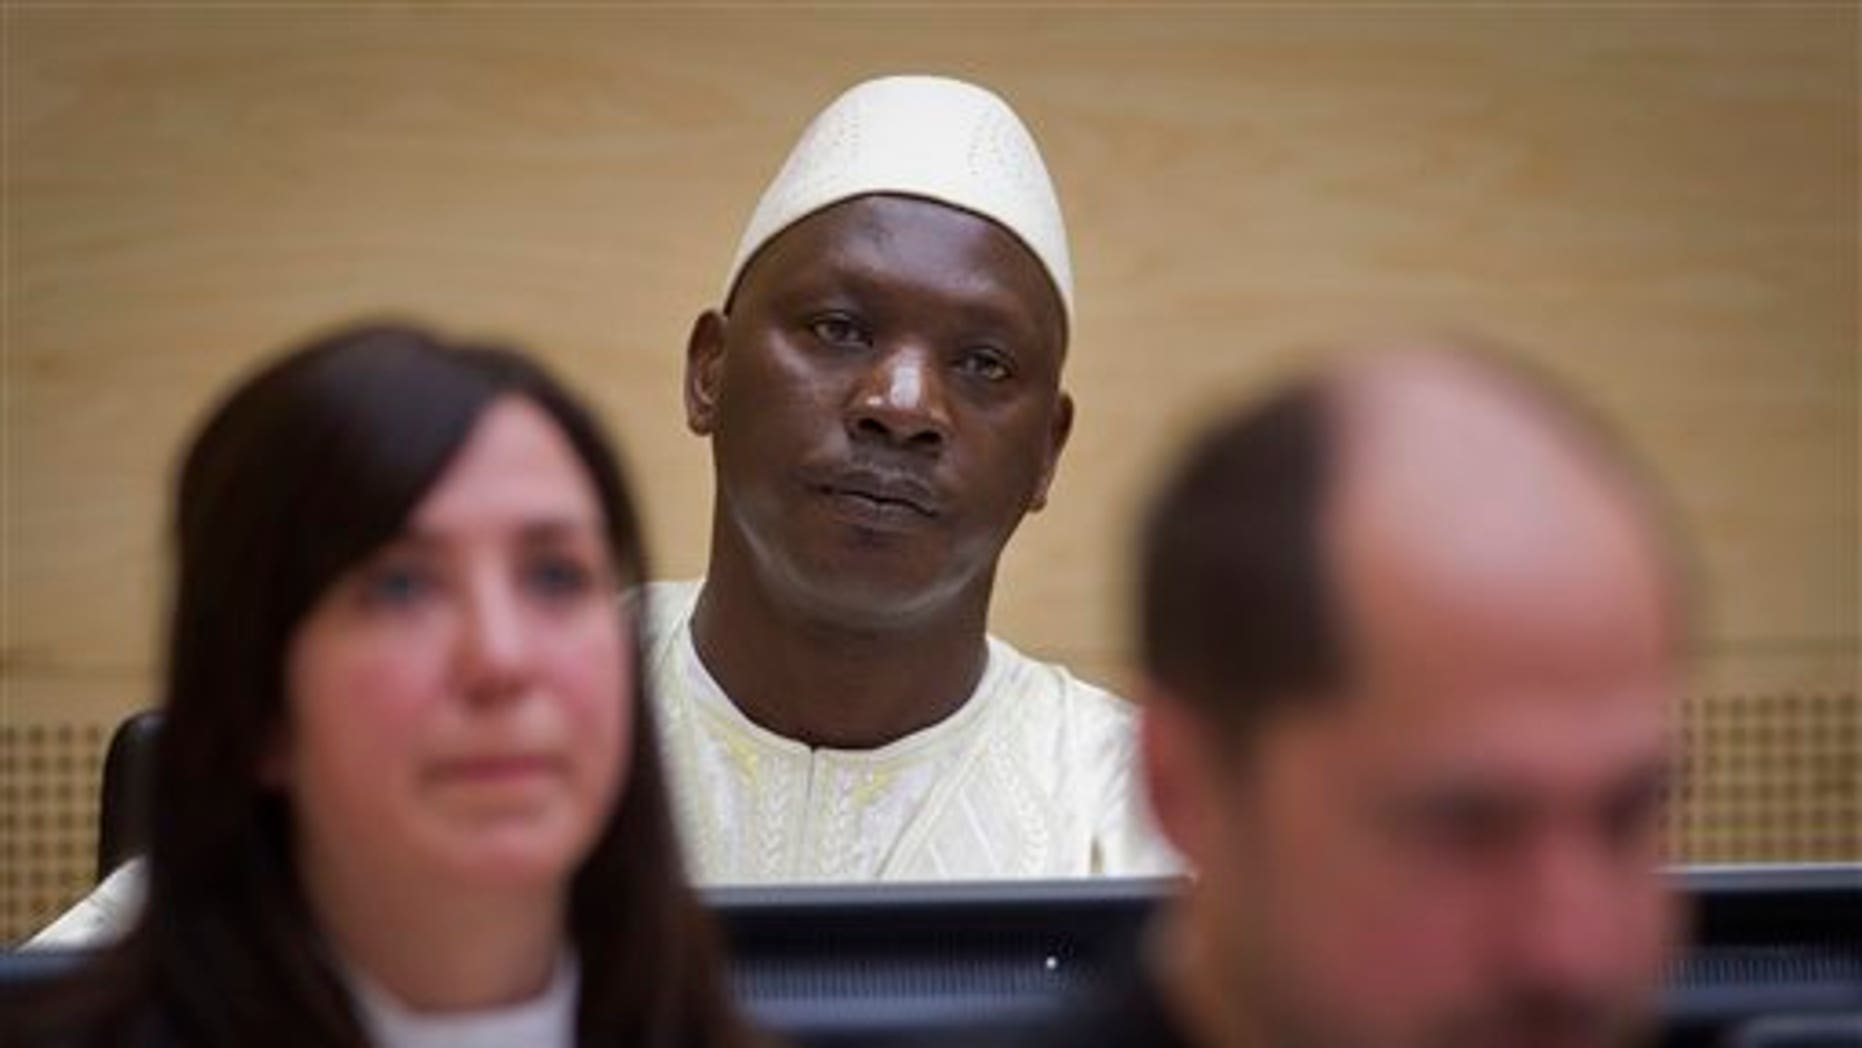 March 14, 2012: Congolese warlord Thomas Lubanga, center, awaits his verdict in the courtroom of the International Criminal Court (ICC) in The Hague, Netherlands.